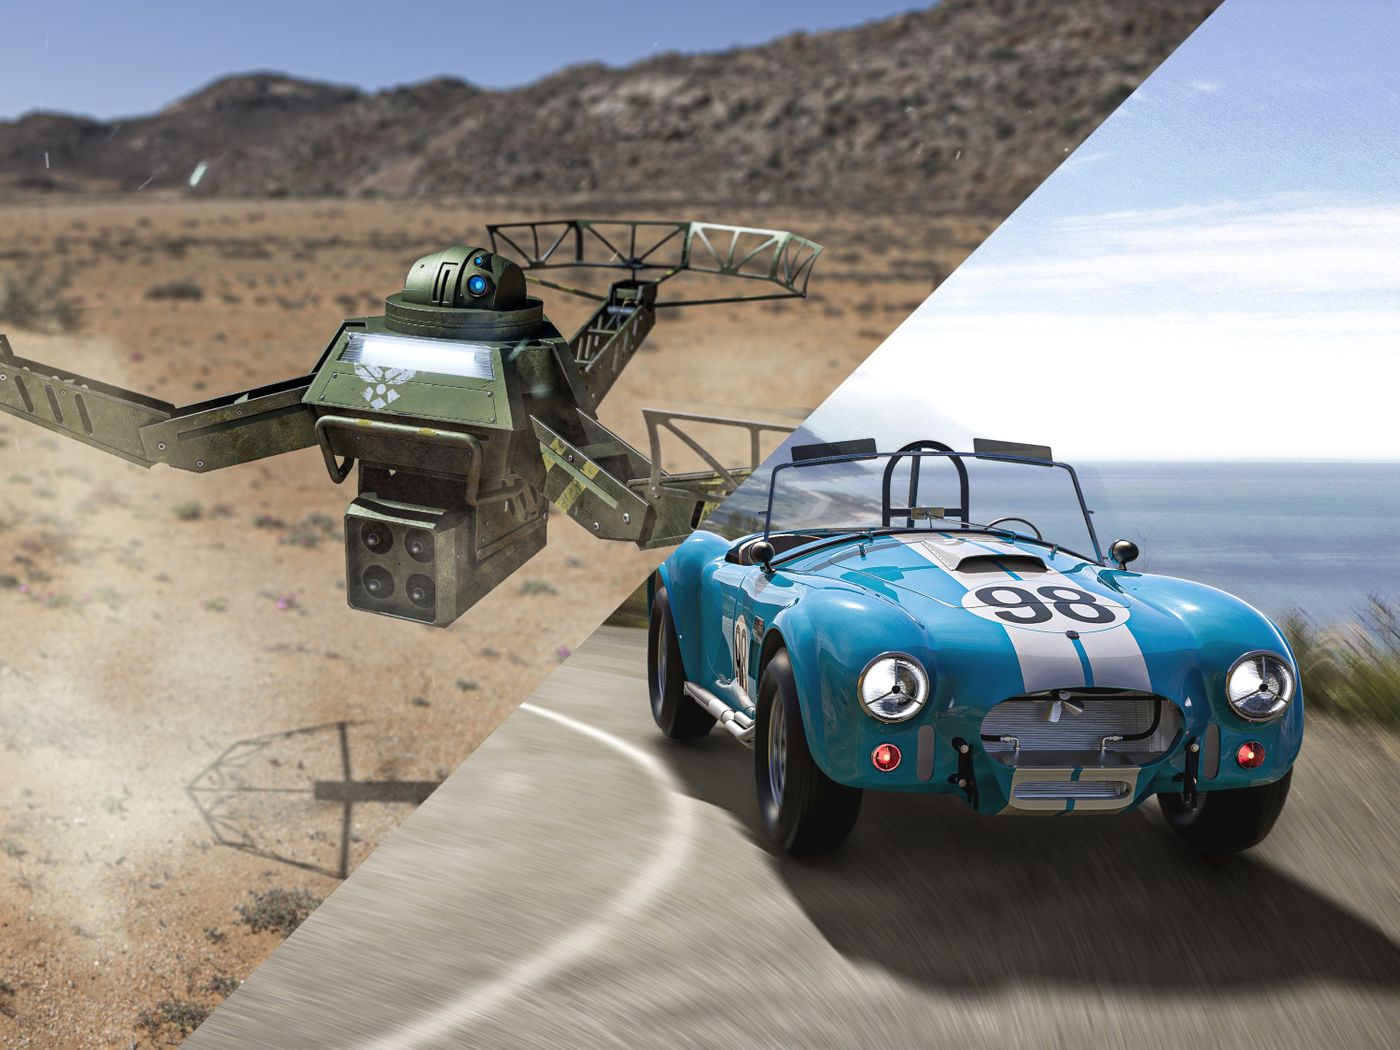 Hardsurface models of a sci-fi drone and a historical car